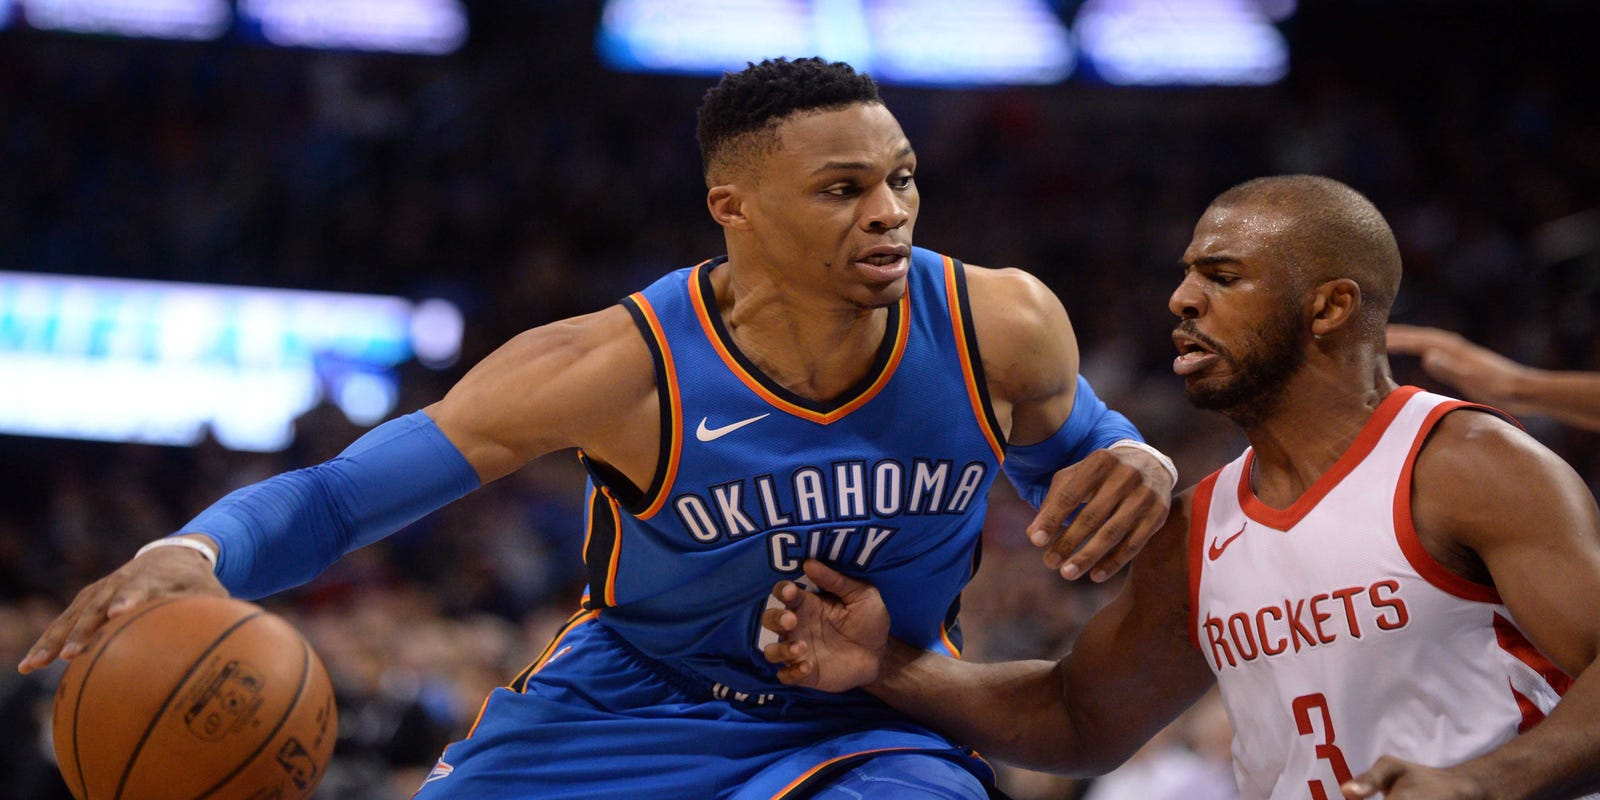 reputable site 98e61 334a3 NBA: Thunder's Russell Westbrook traded to Rockets for Chris ...